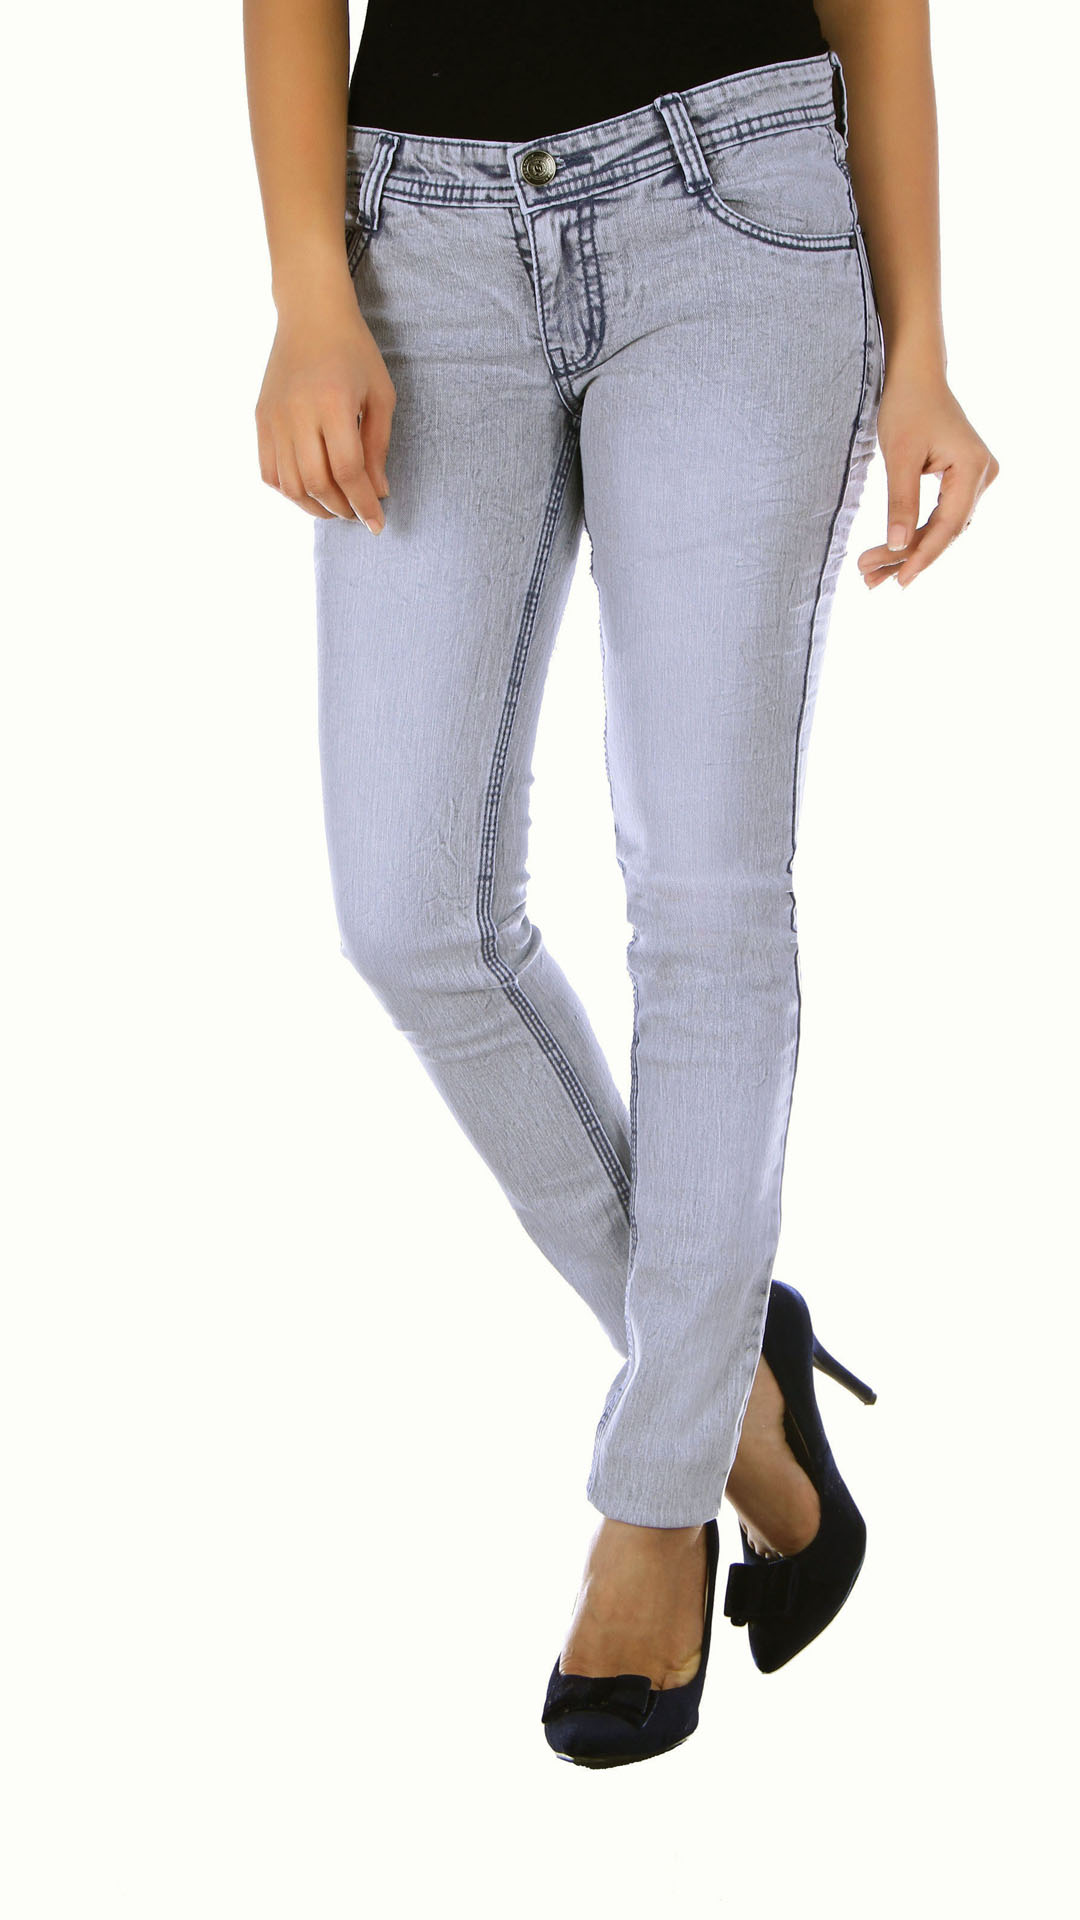 Studio-Nexx-Womens-Grey-Slim-Fit-Jeans